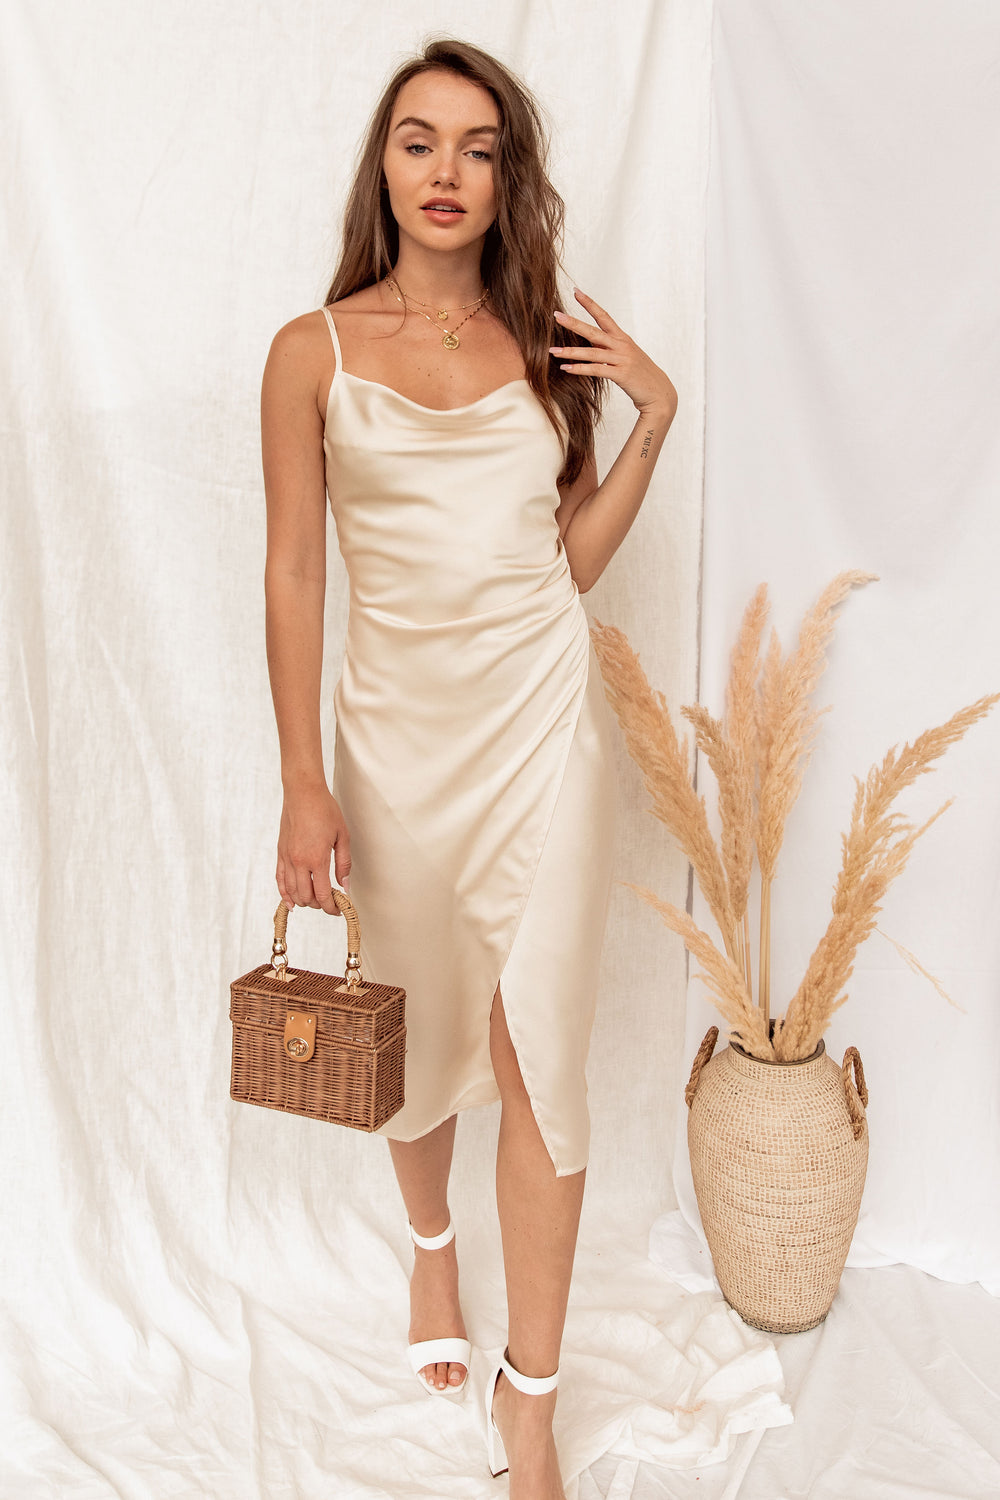 Downtown Champagne Slip Dress